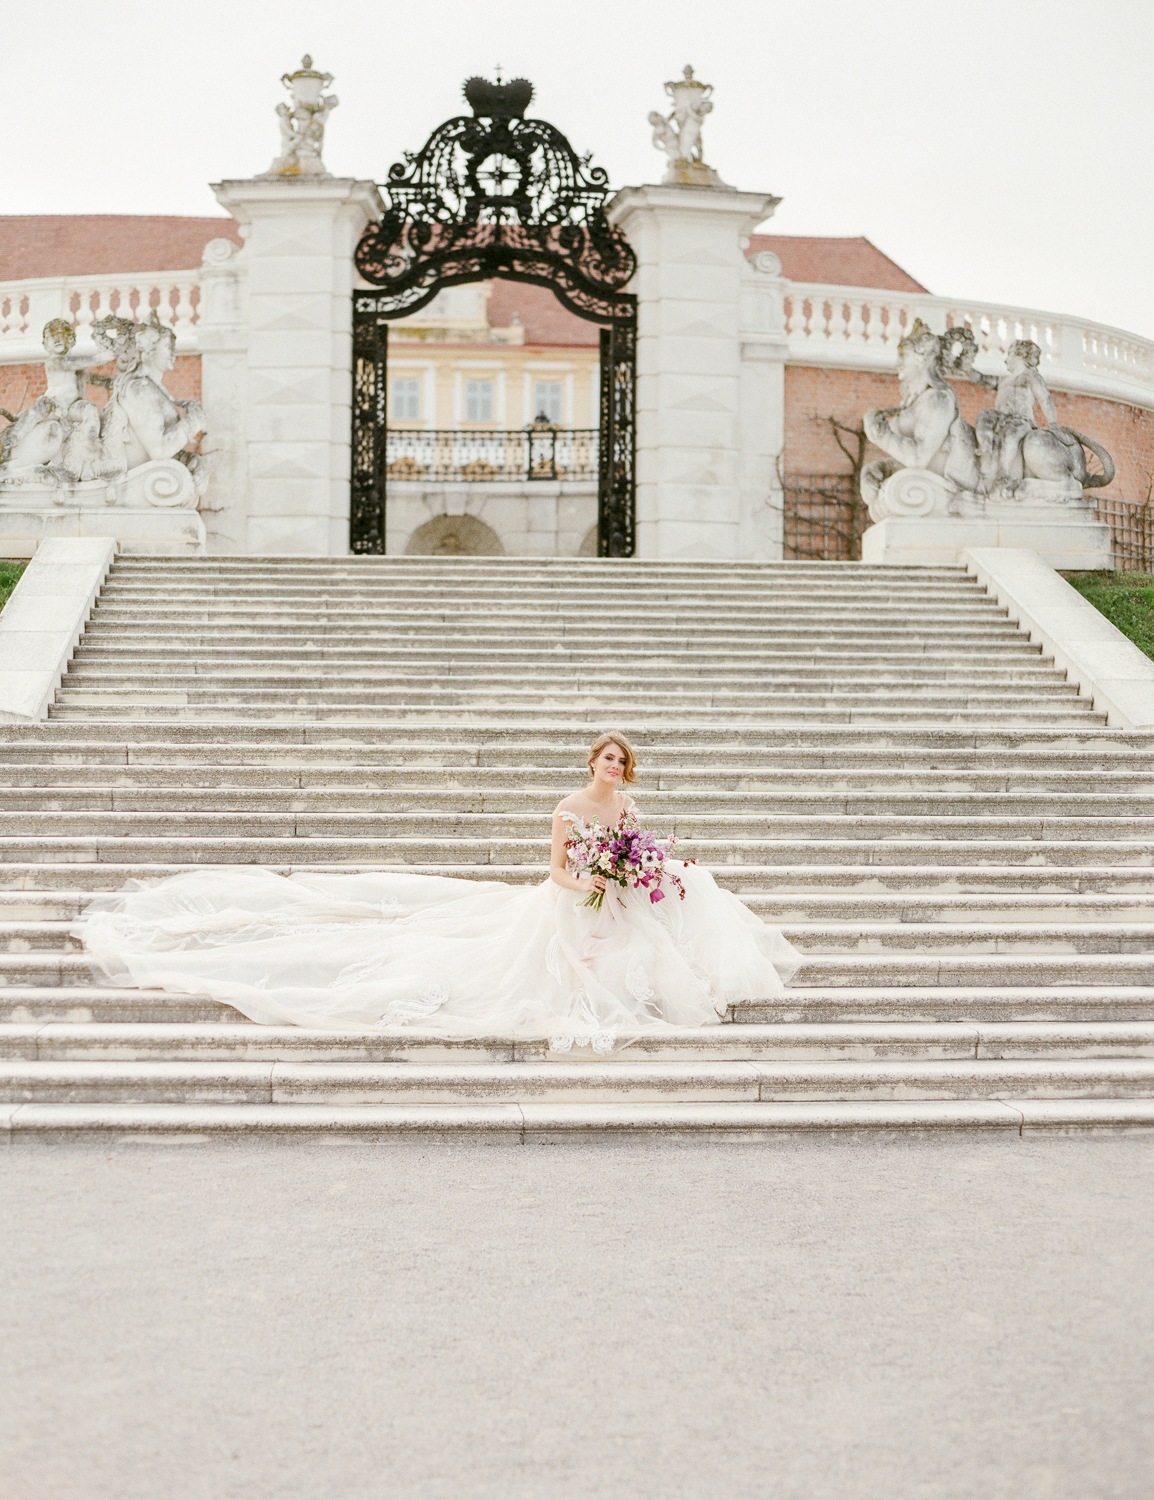 schlosshof wedding editorial vienna wedding photographer nikol bodnarova film wedding photographer212.JPG